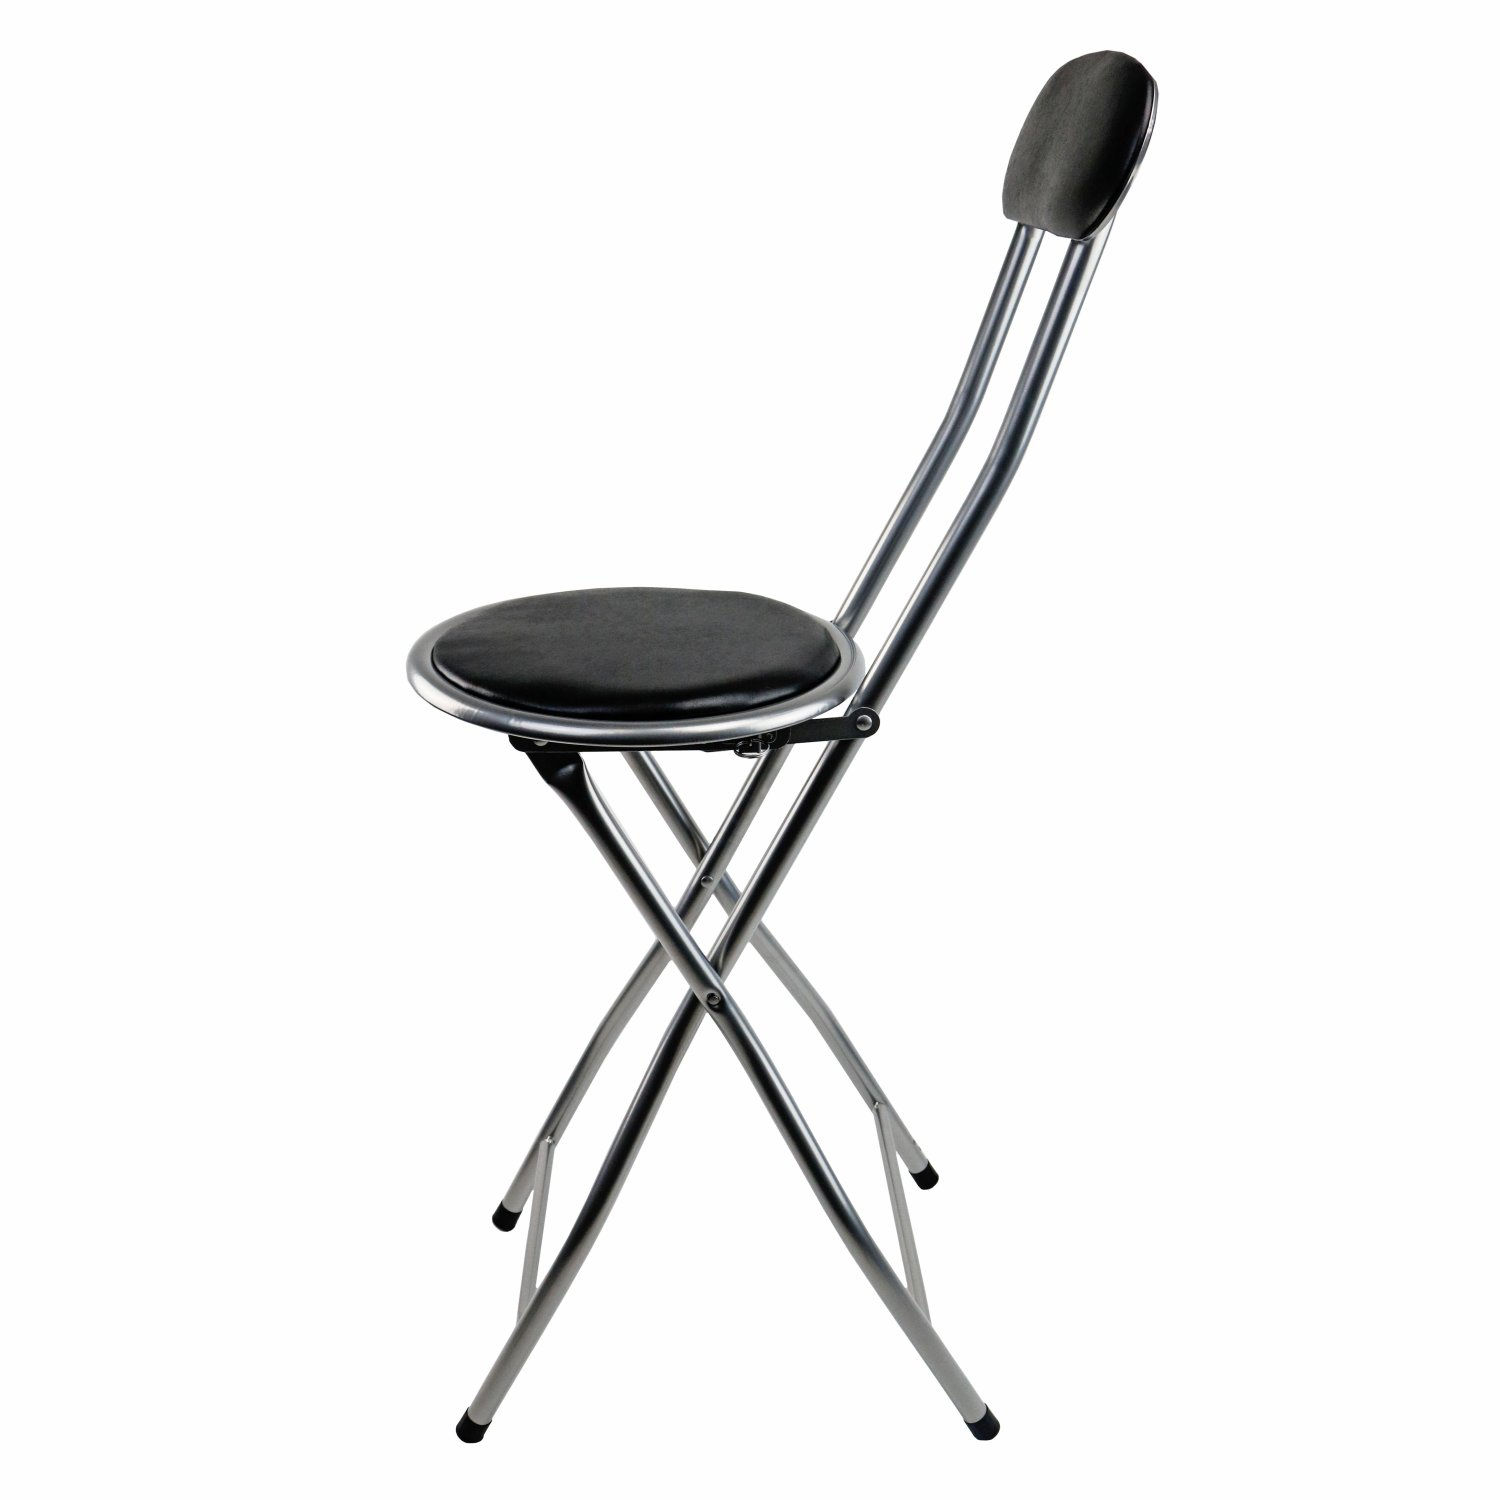 Black Kitchen Bar Stools Uk: NEW! BLACK PADDED Folding High Chair Breakfast Kitchen Bar